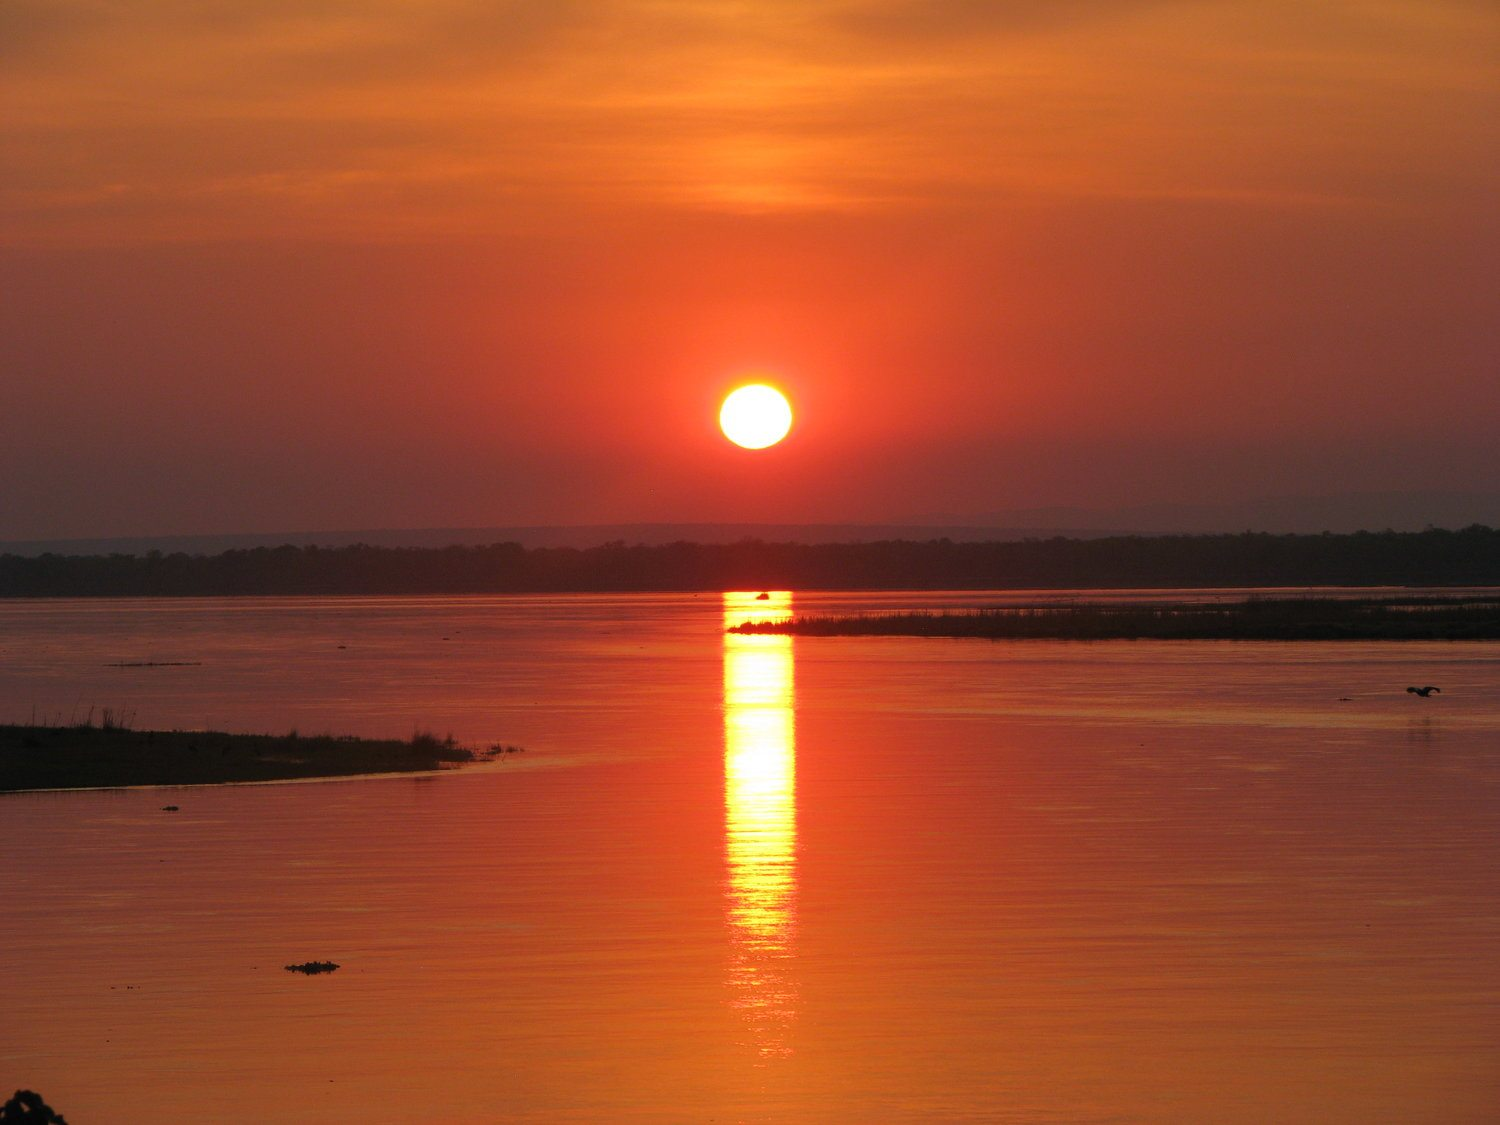 Kenya sunset over a water view